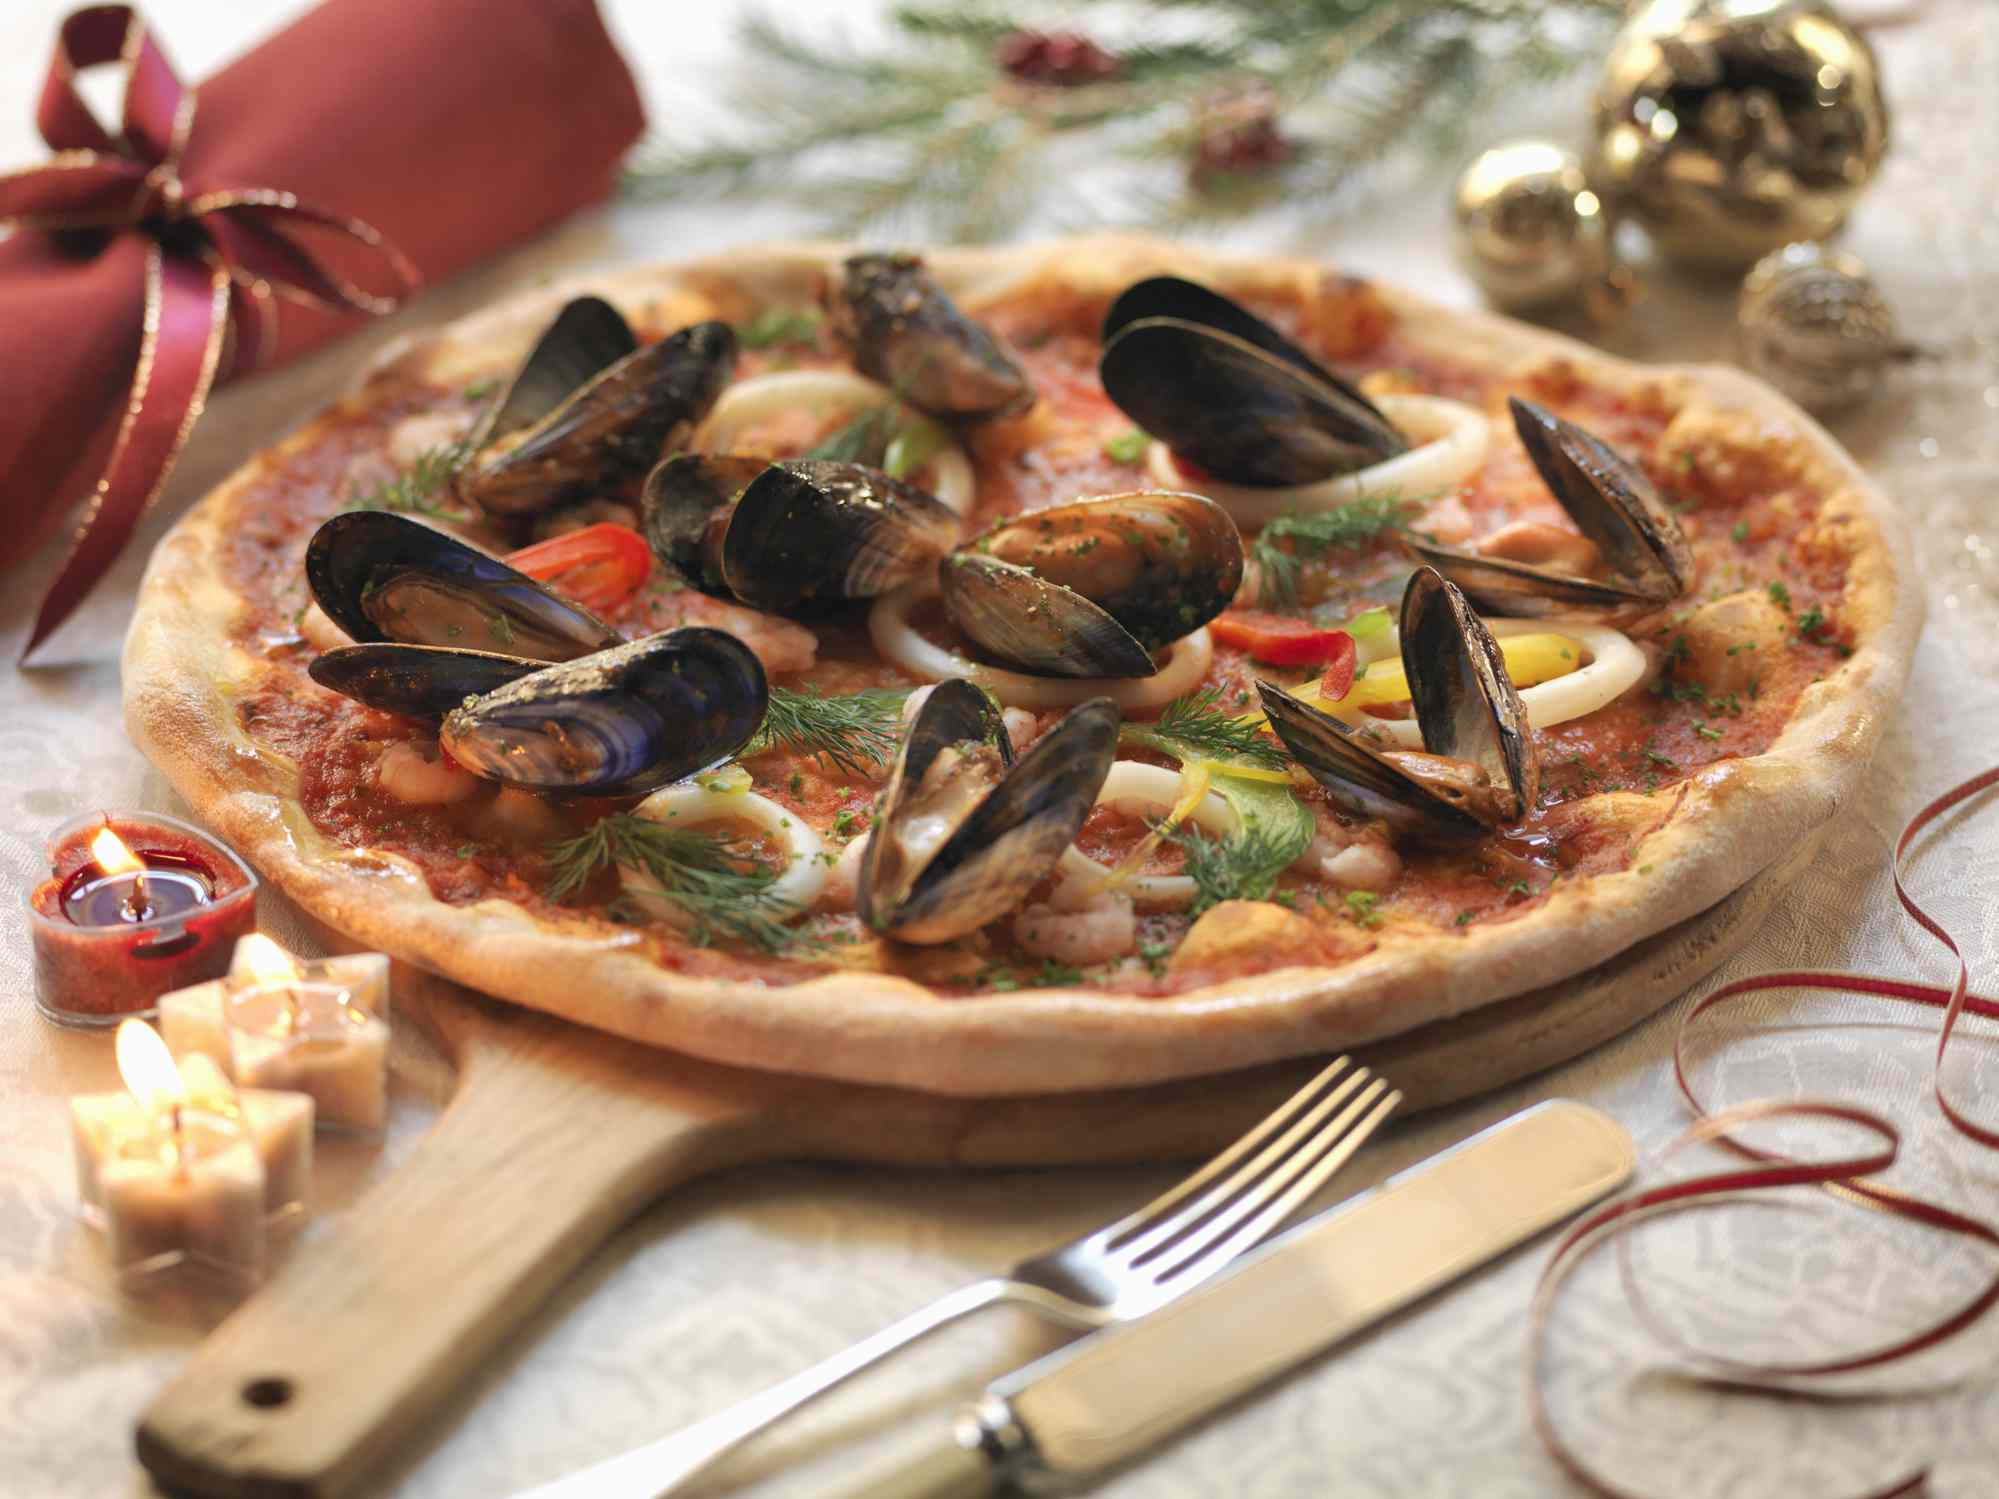 Seafood pizza on a board